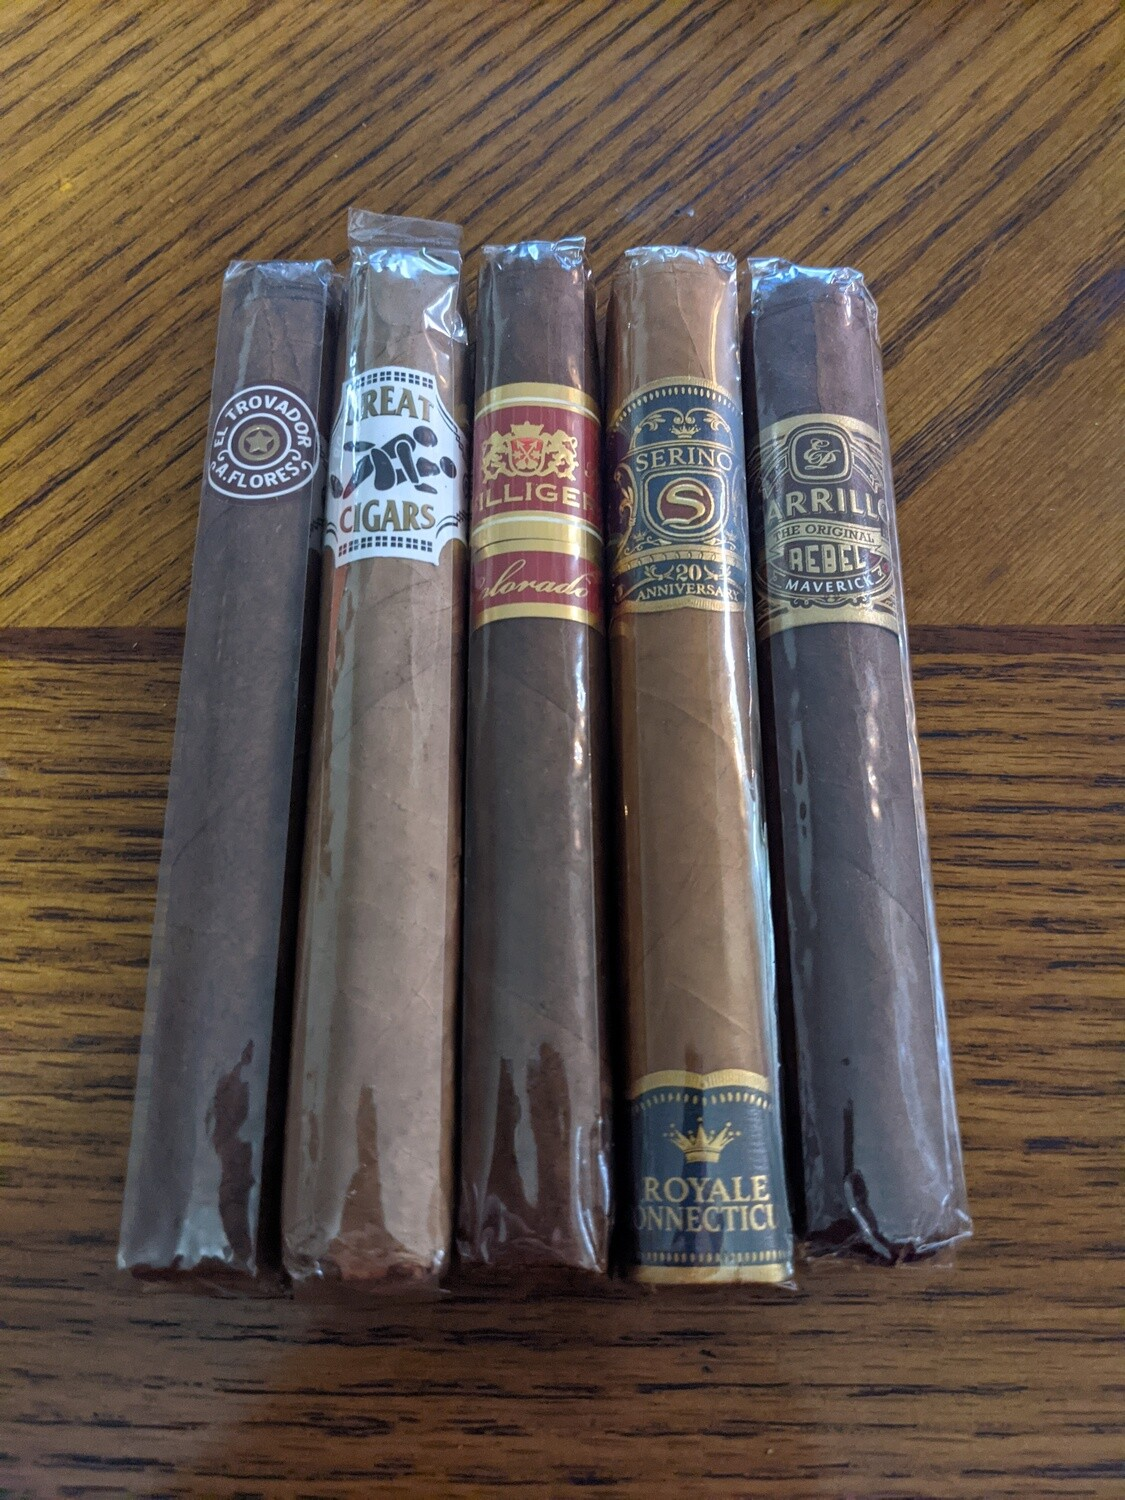 They're Great Cigars 5 Pack Sampler